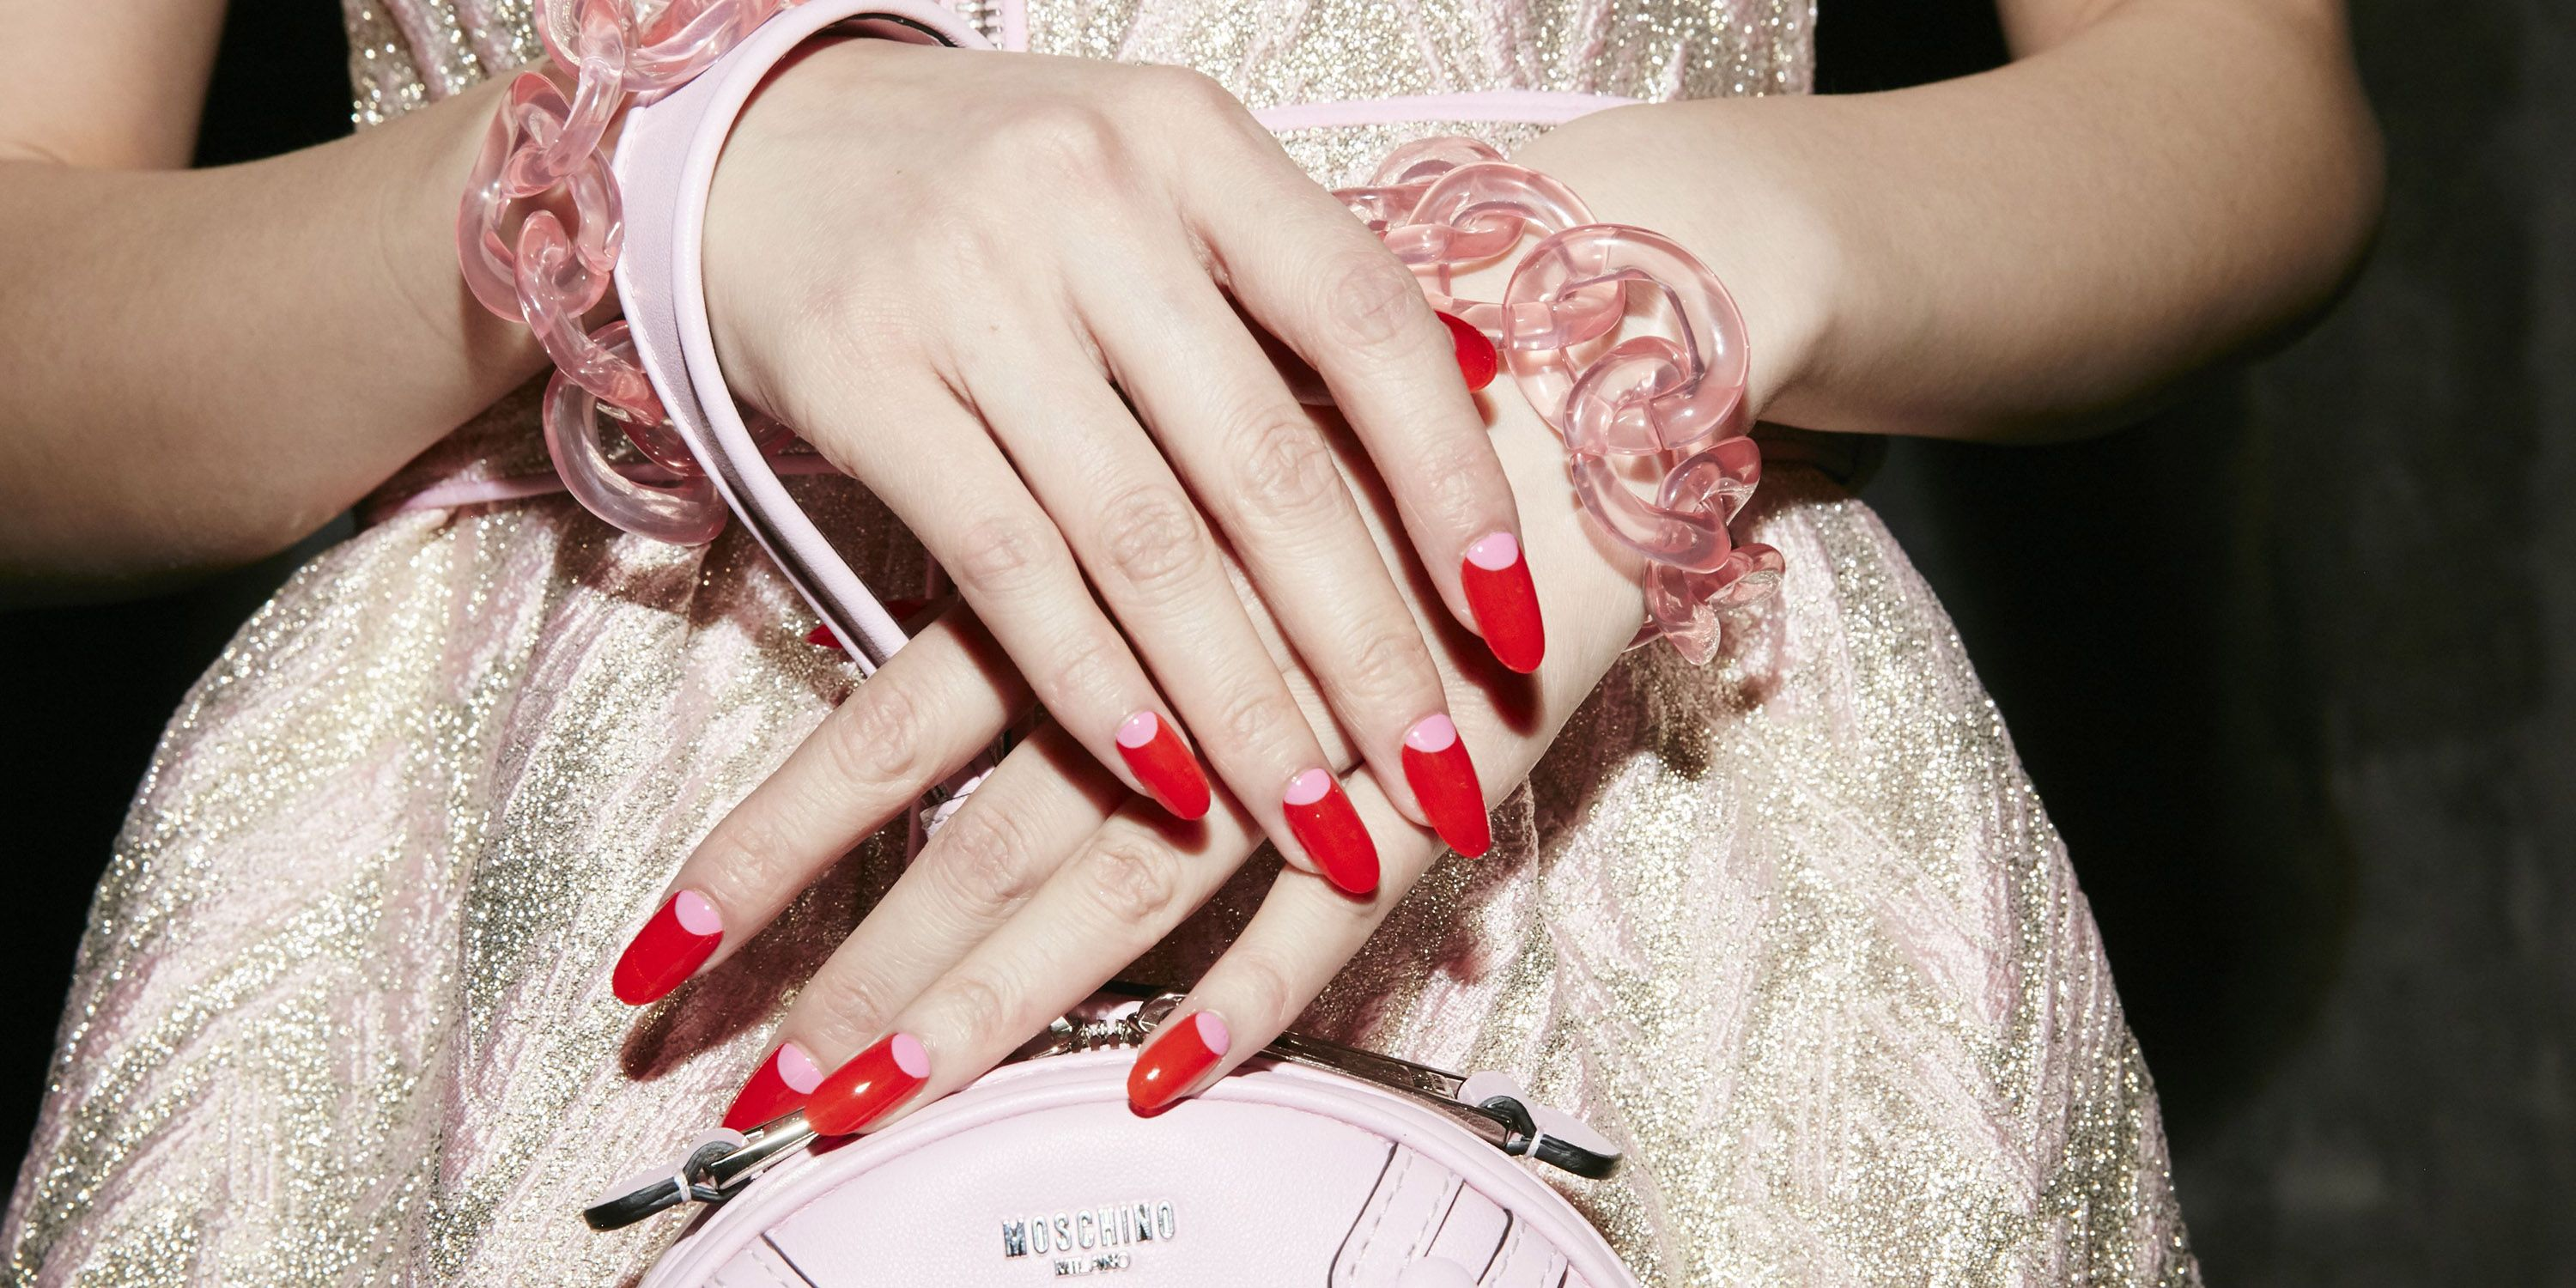 Fall 2018 Nails Trends - Nail Art And Nail Trends For Fall Winter 2018